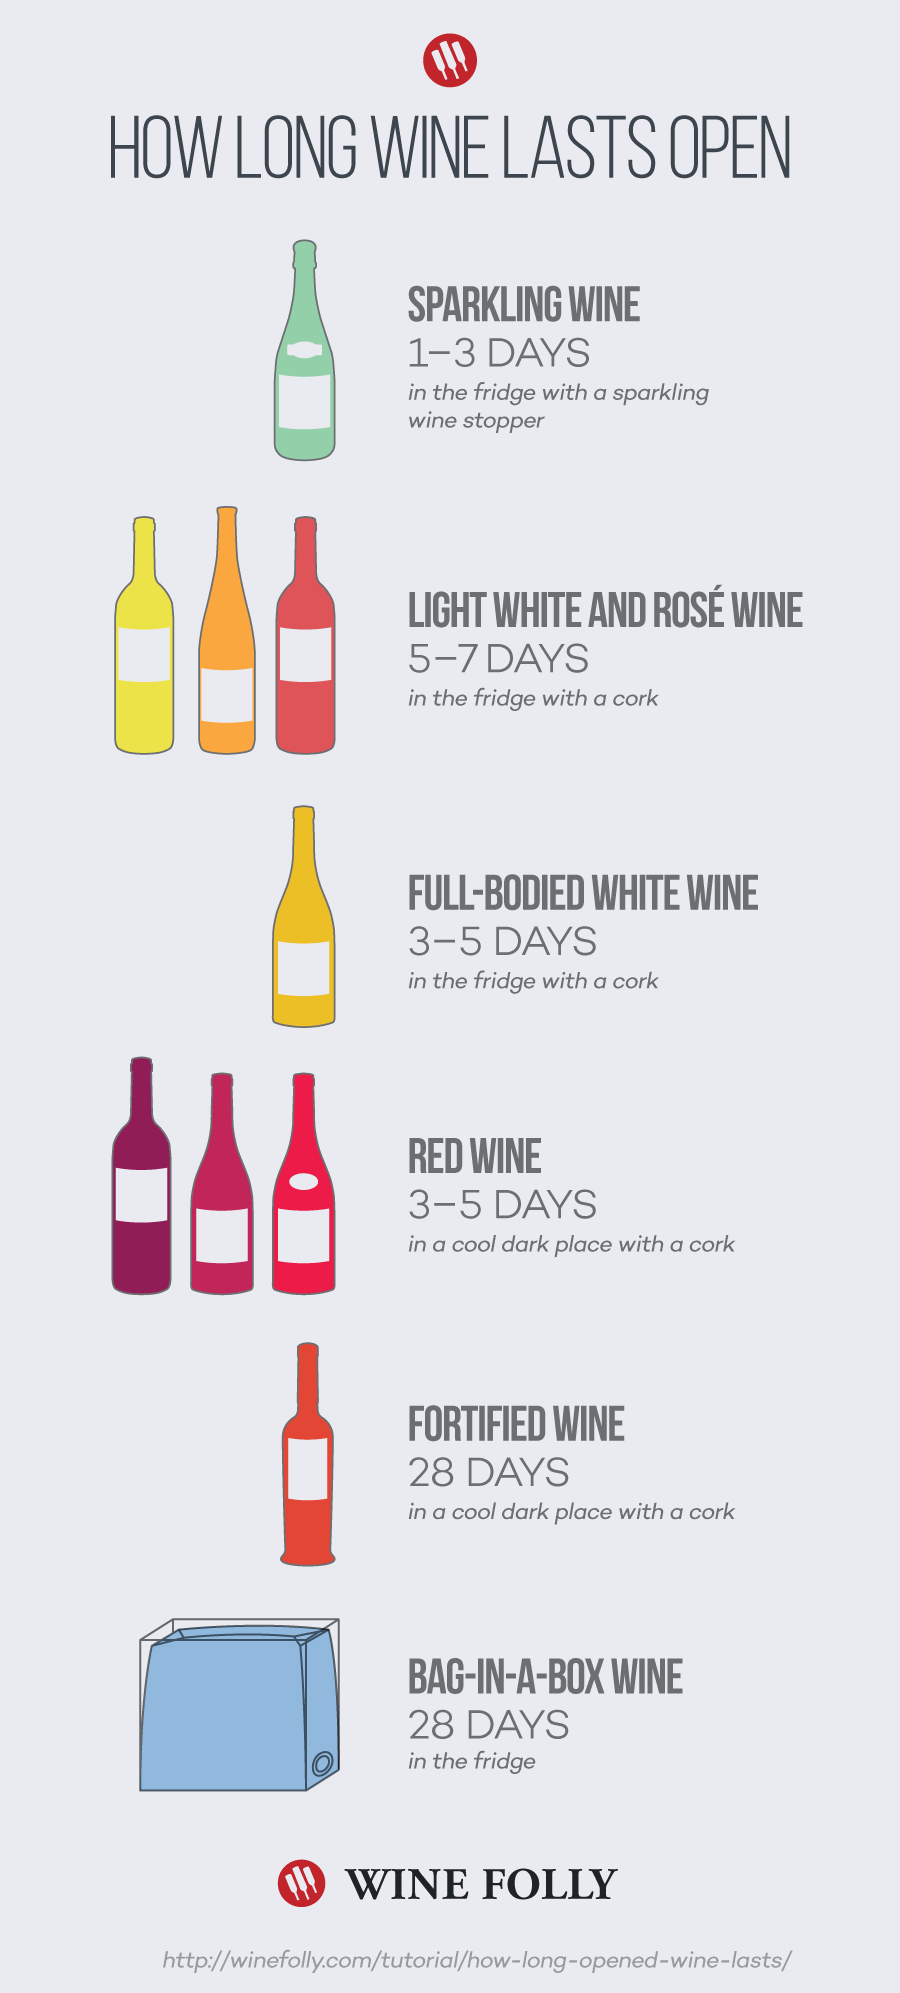 how-long-wine-lasts-open